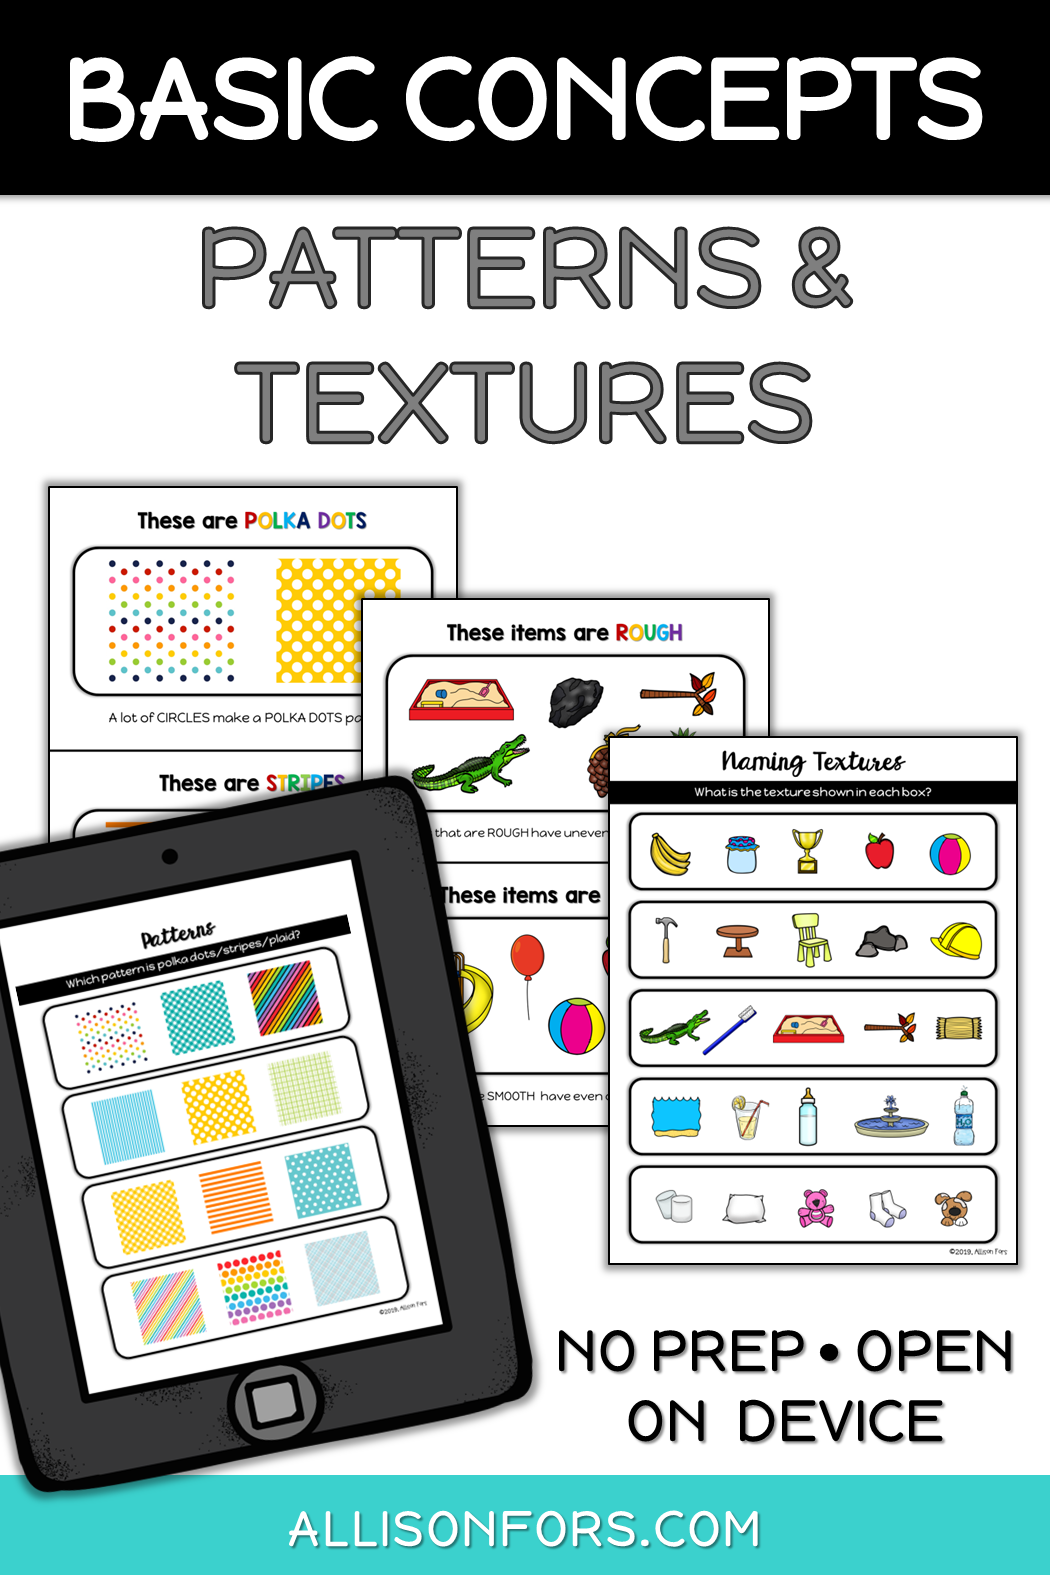 Patterns And Textures Speech Therapy Speech Therapy Speech Therapy Materials Speech Therapy Activities [ 1575 x 1050 Pixel ]